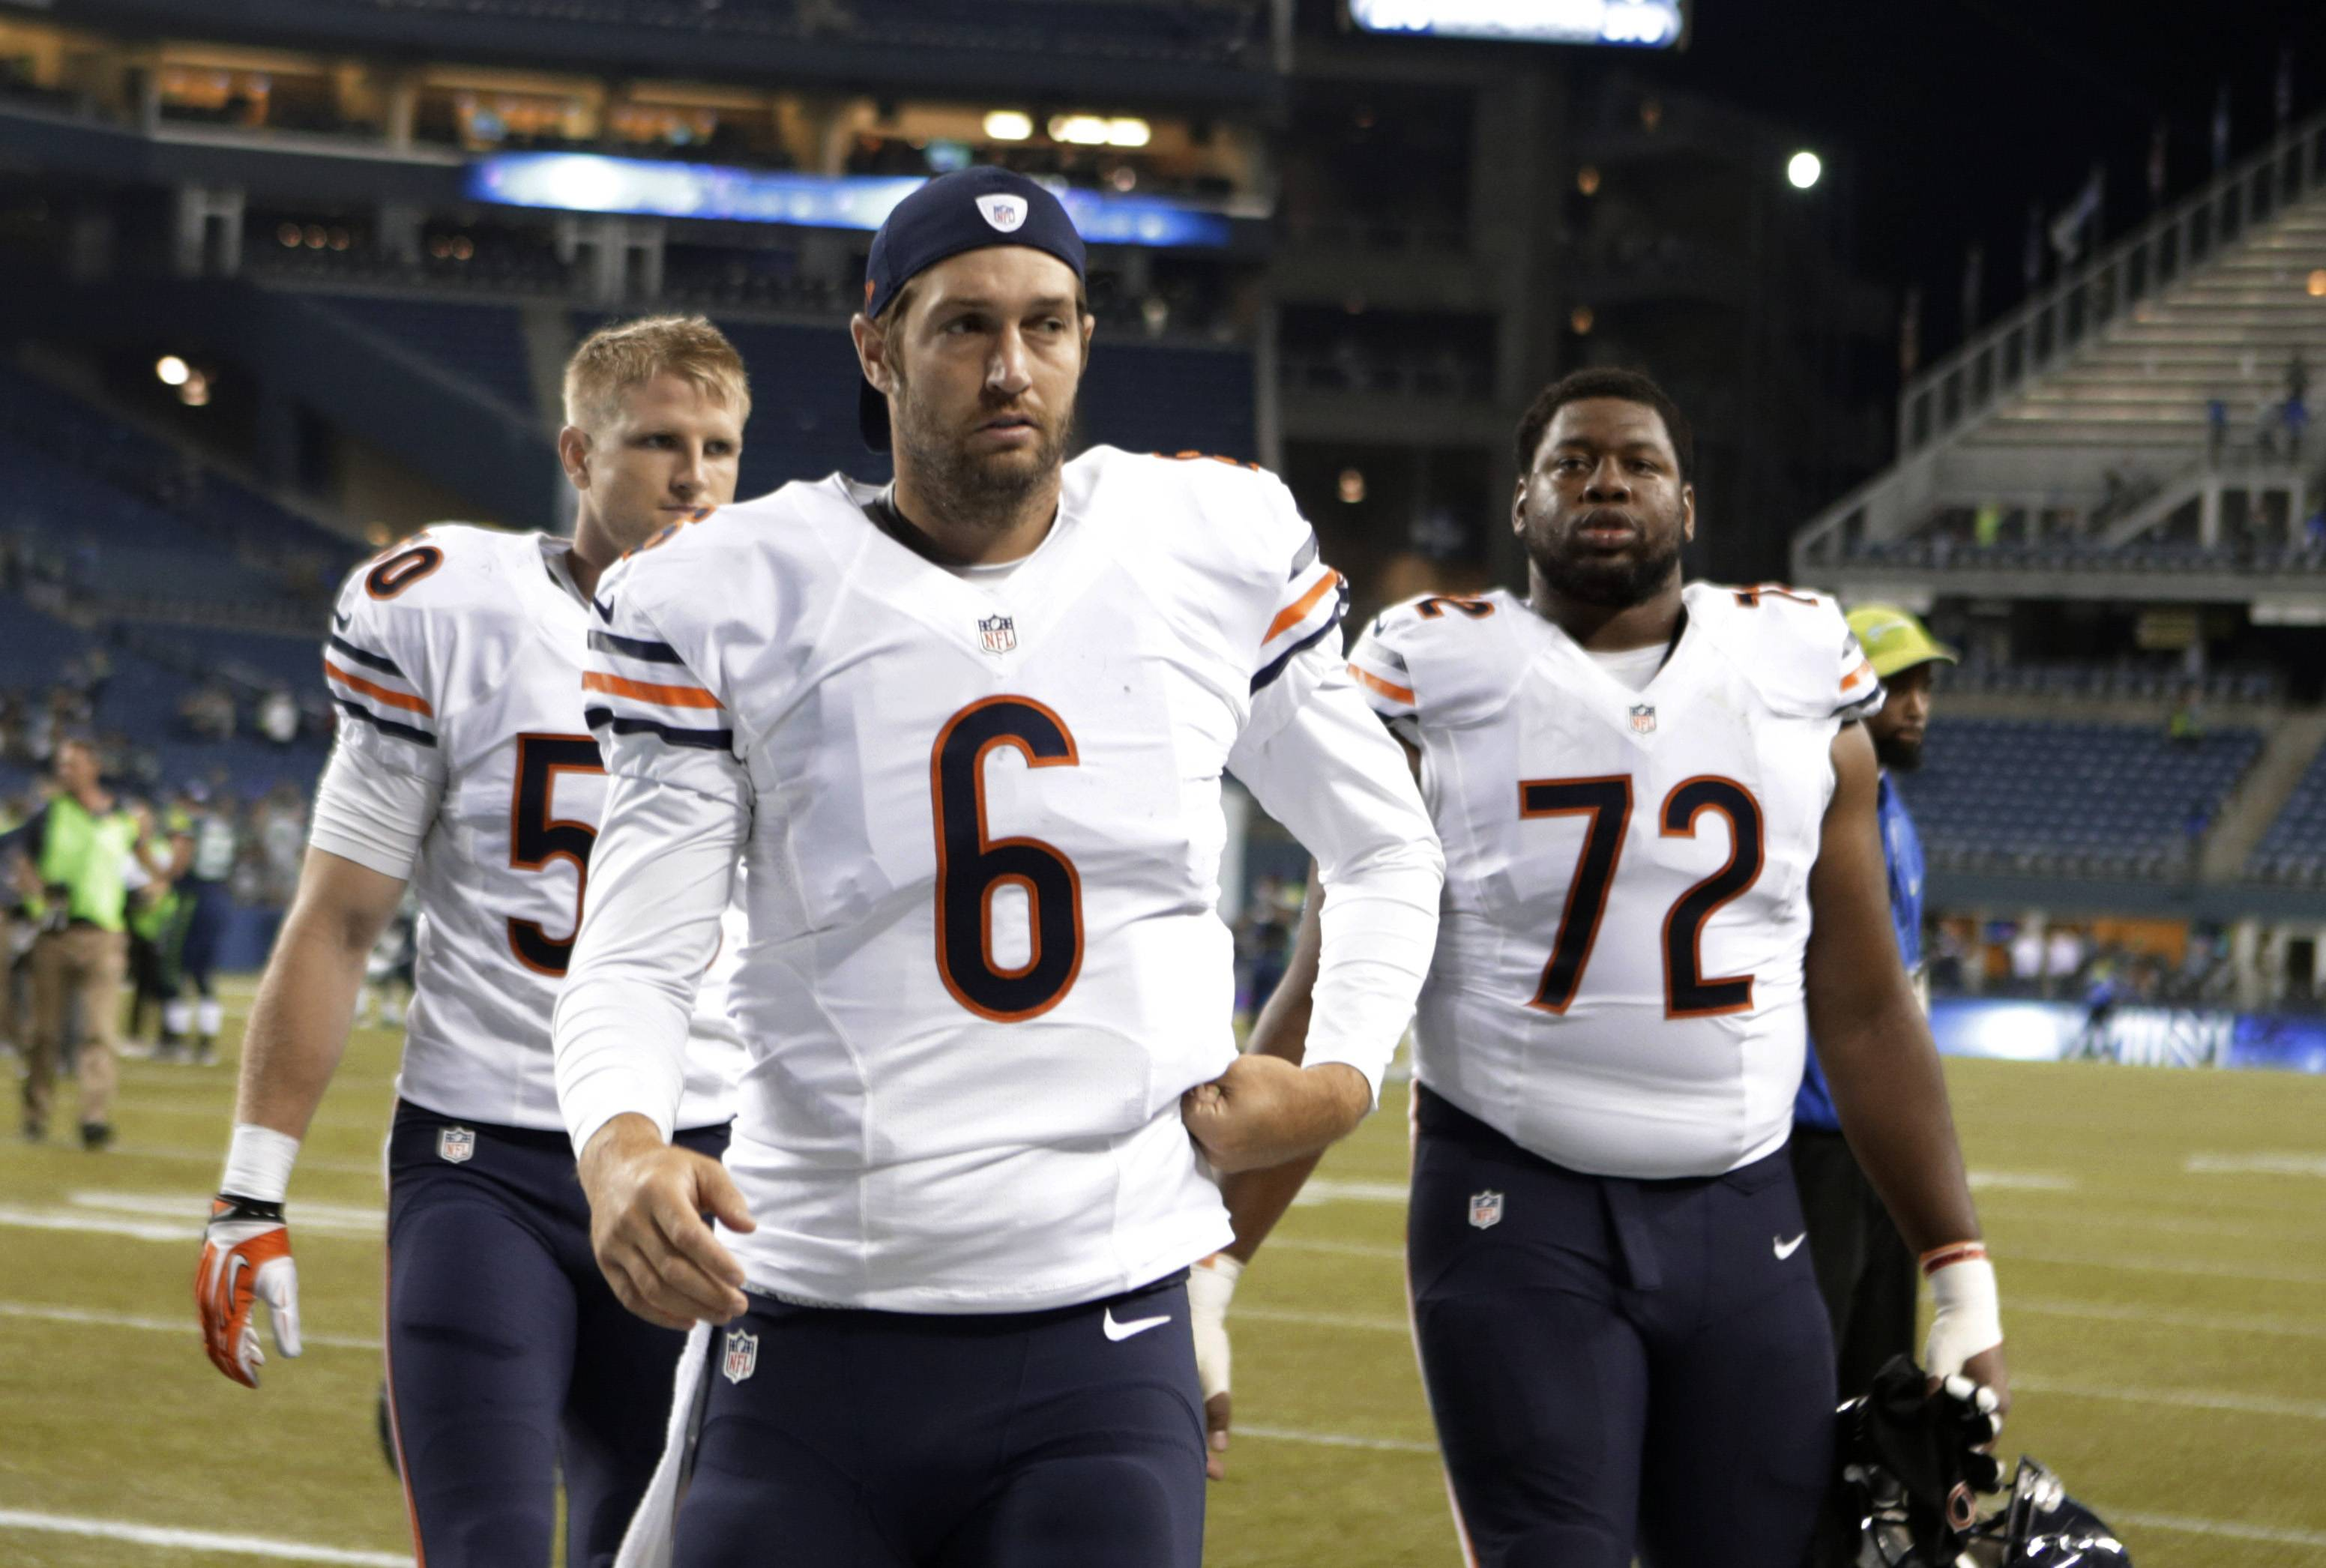 Imrem: Time for Bears' Cutler to show he's all grown up